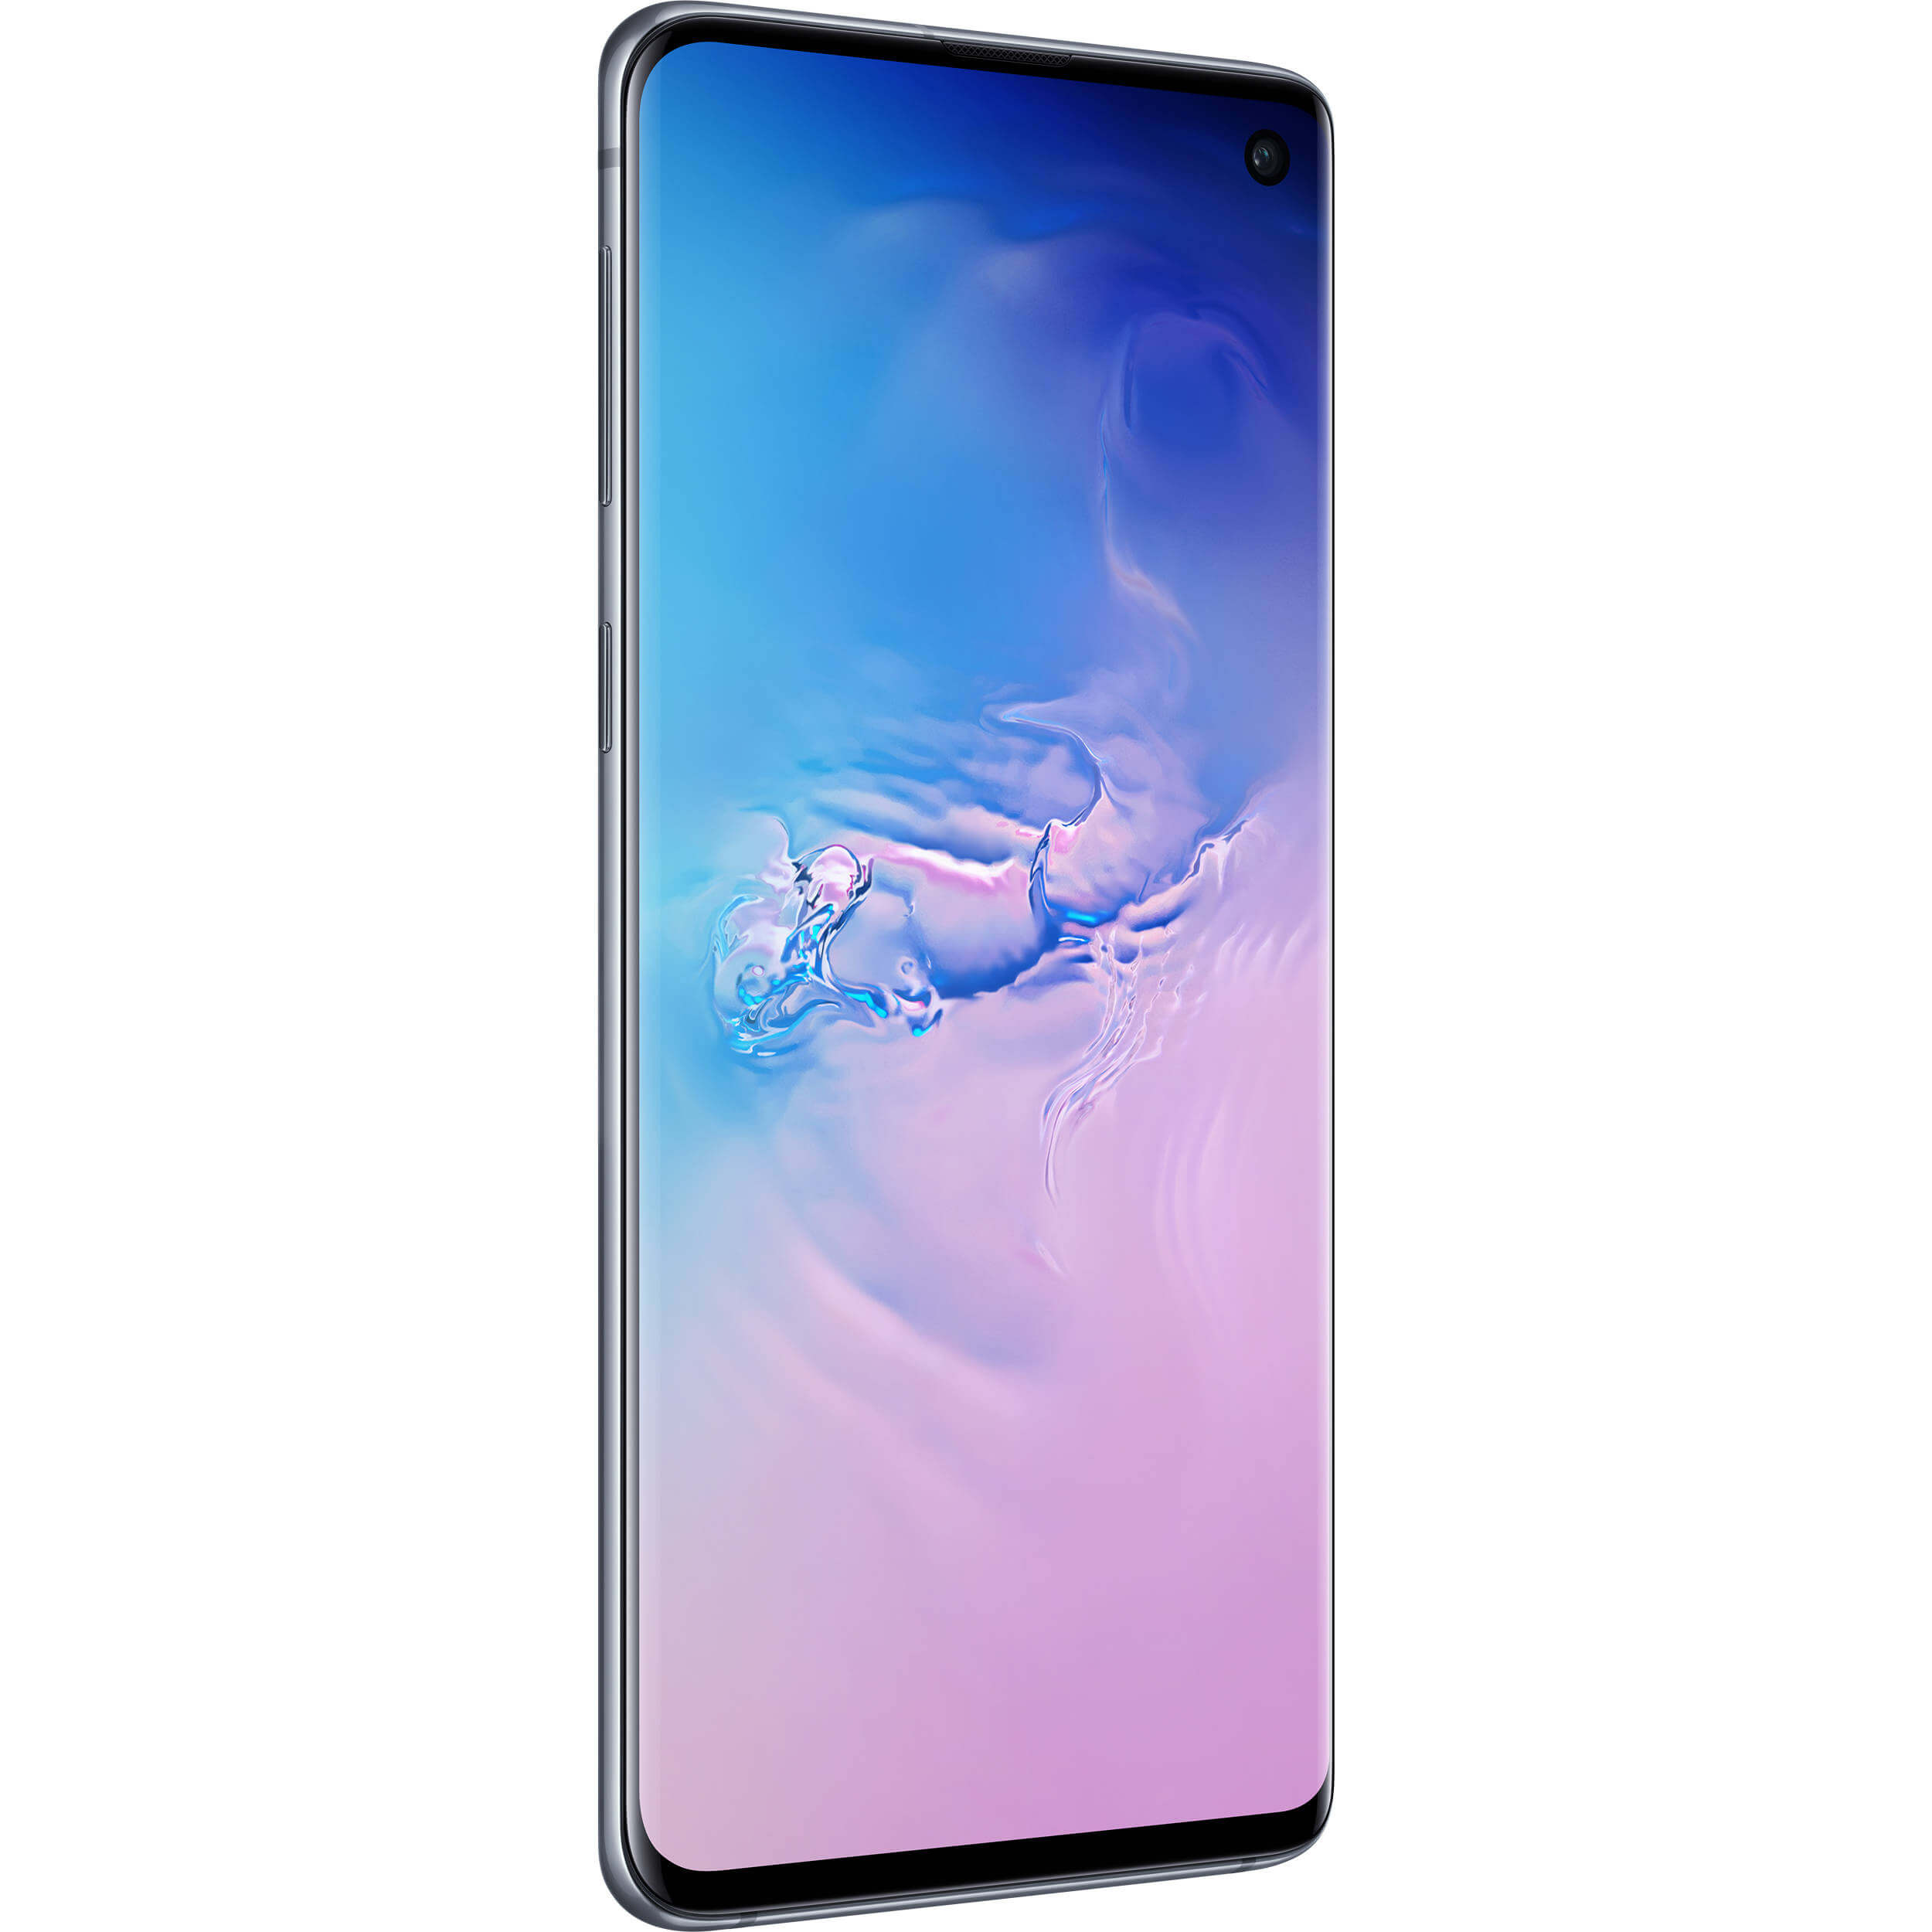 samsung s10 screen burn in issue